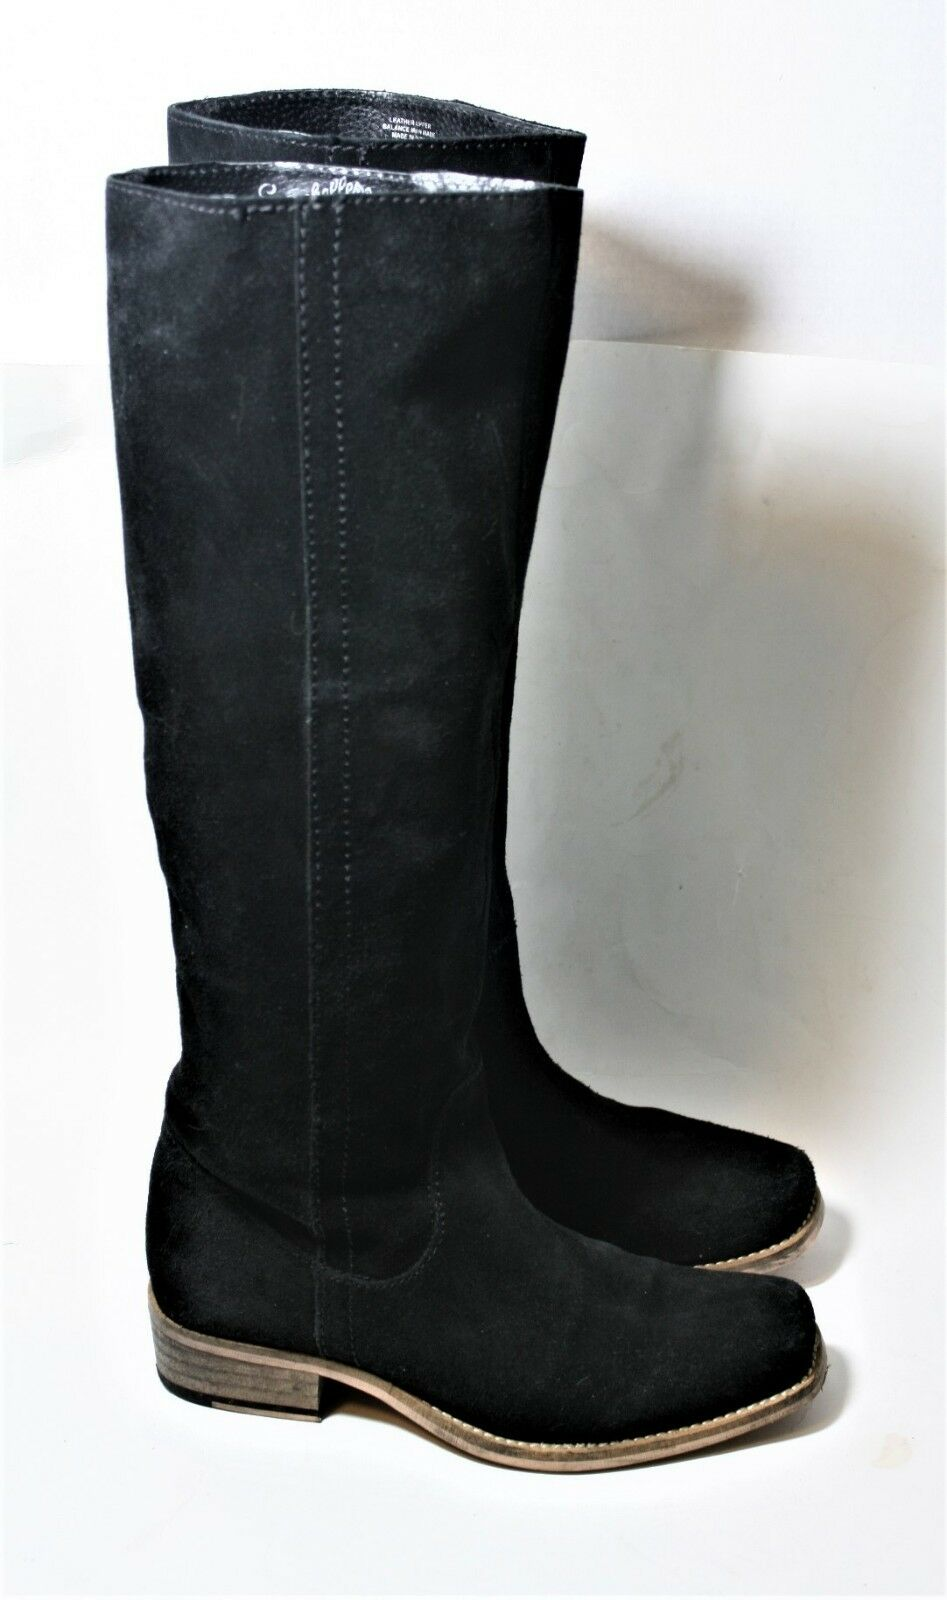 SEYCHELLES SHOES SECRETIVE WESTERN WESTERN WESTERN TALL BOOT BLACK SUEDE PULL ON 6.5  190 c36586